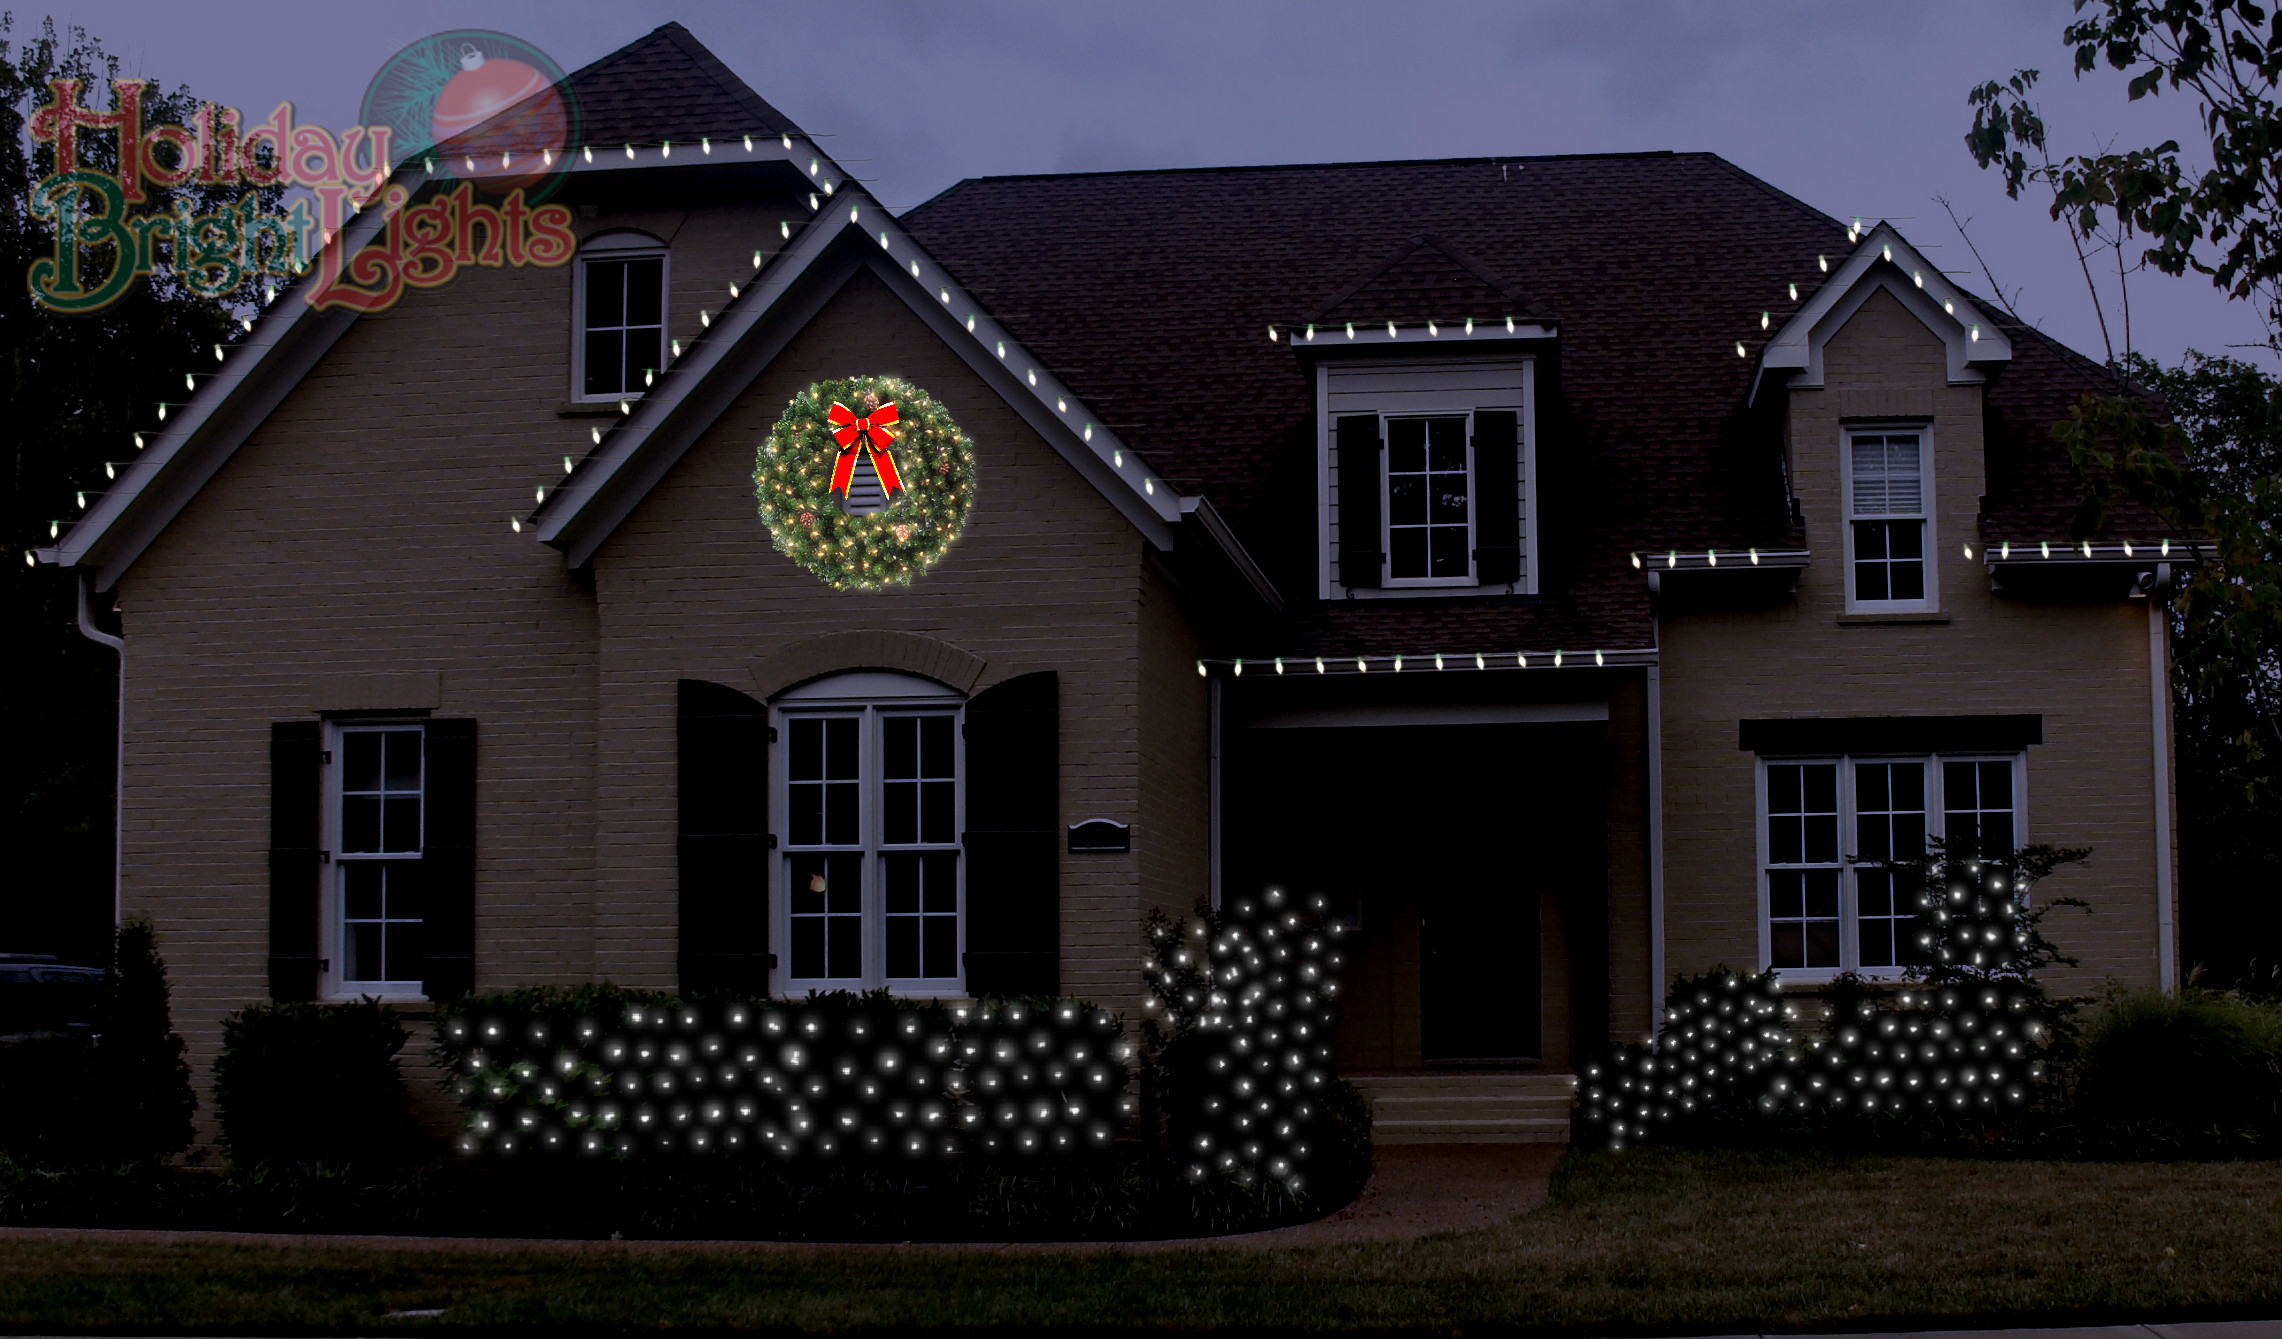 C9 Outdoor Christmas Lights All About Spreading Joy And Creating A Happy Vi